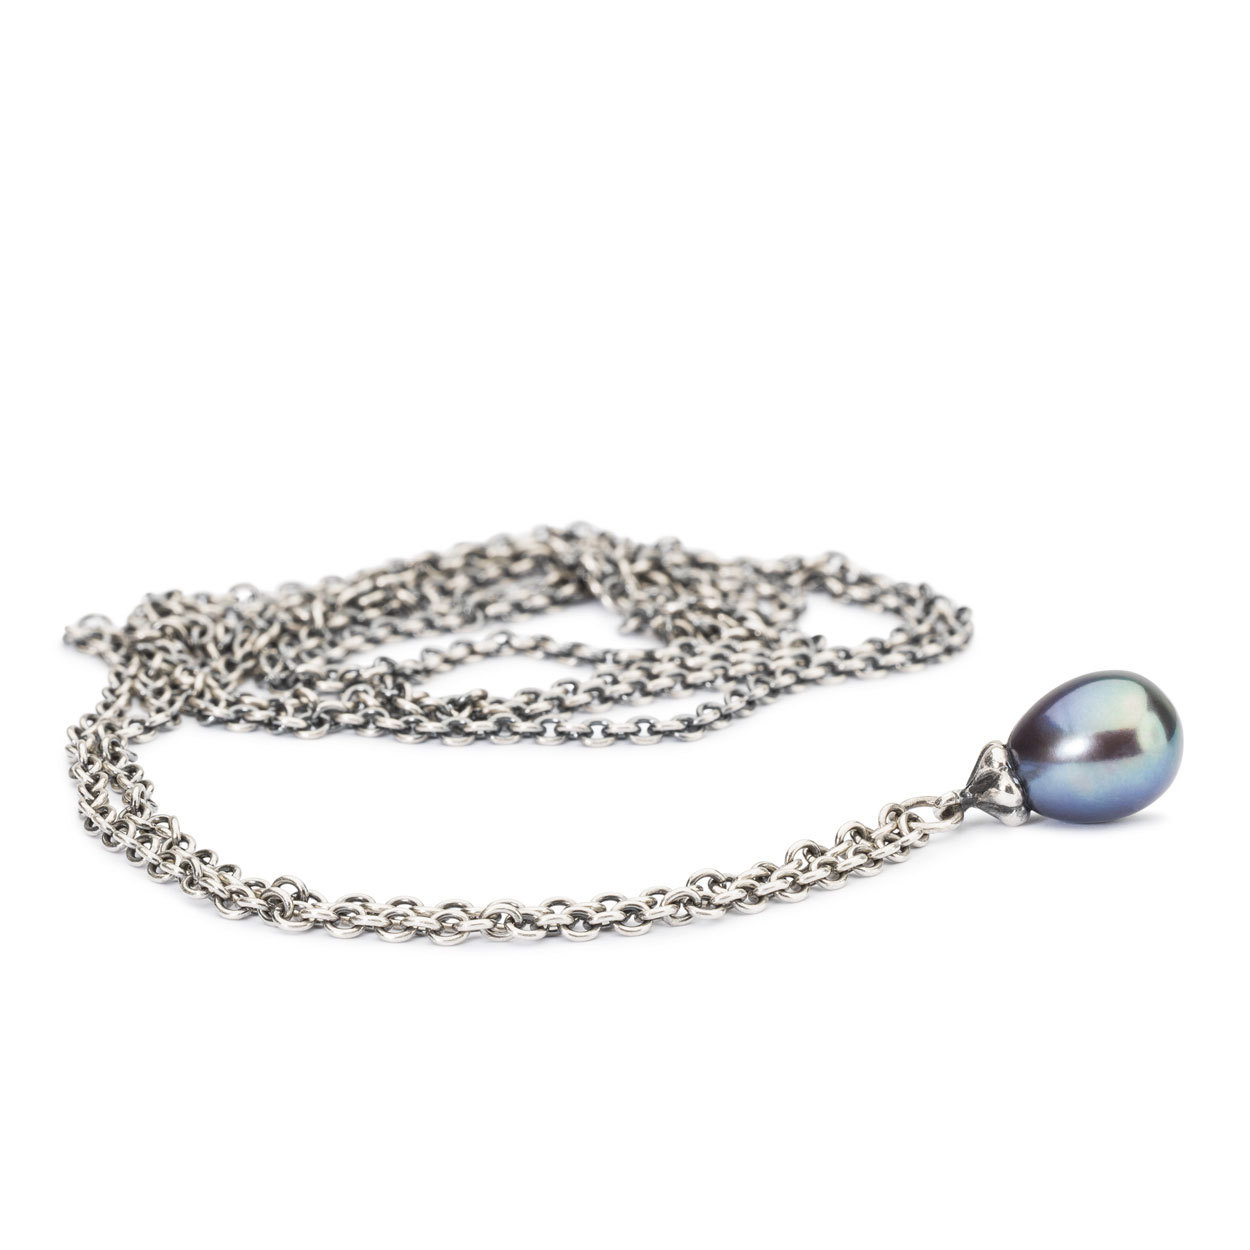 Trollbeads TAGFA-00058 Ketting Peacock Parel zilver 80 cm